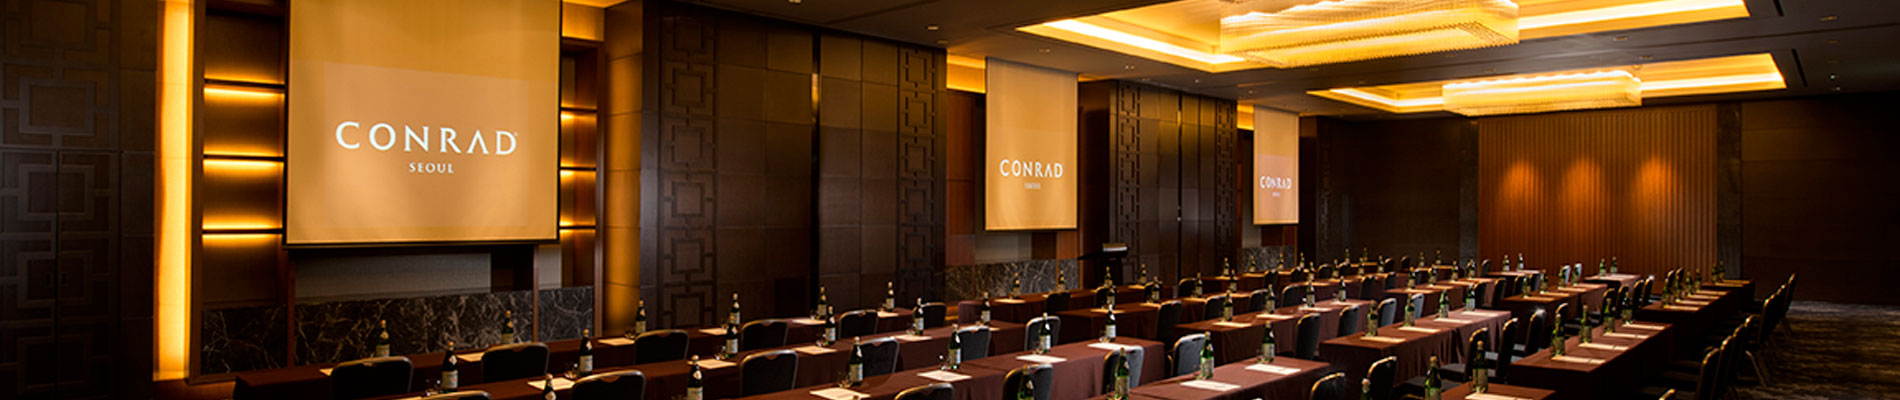 Conrad Seoul Meeting Room